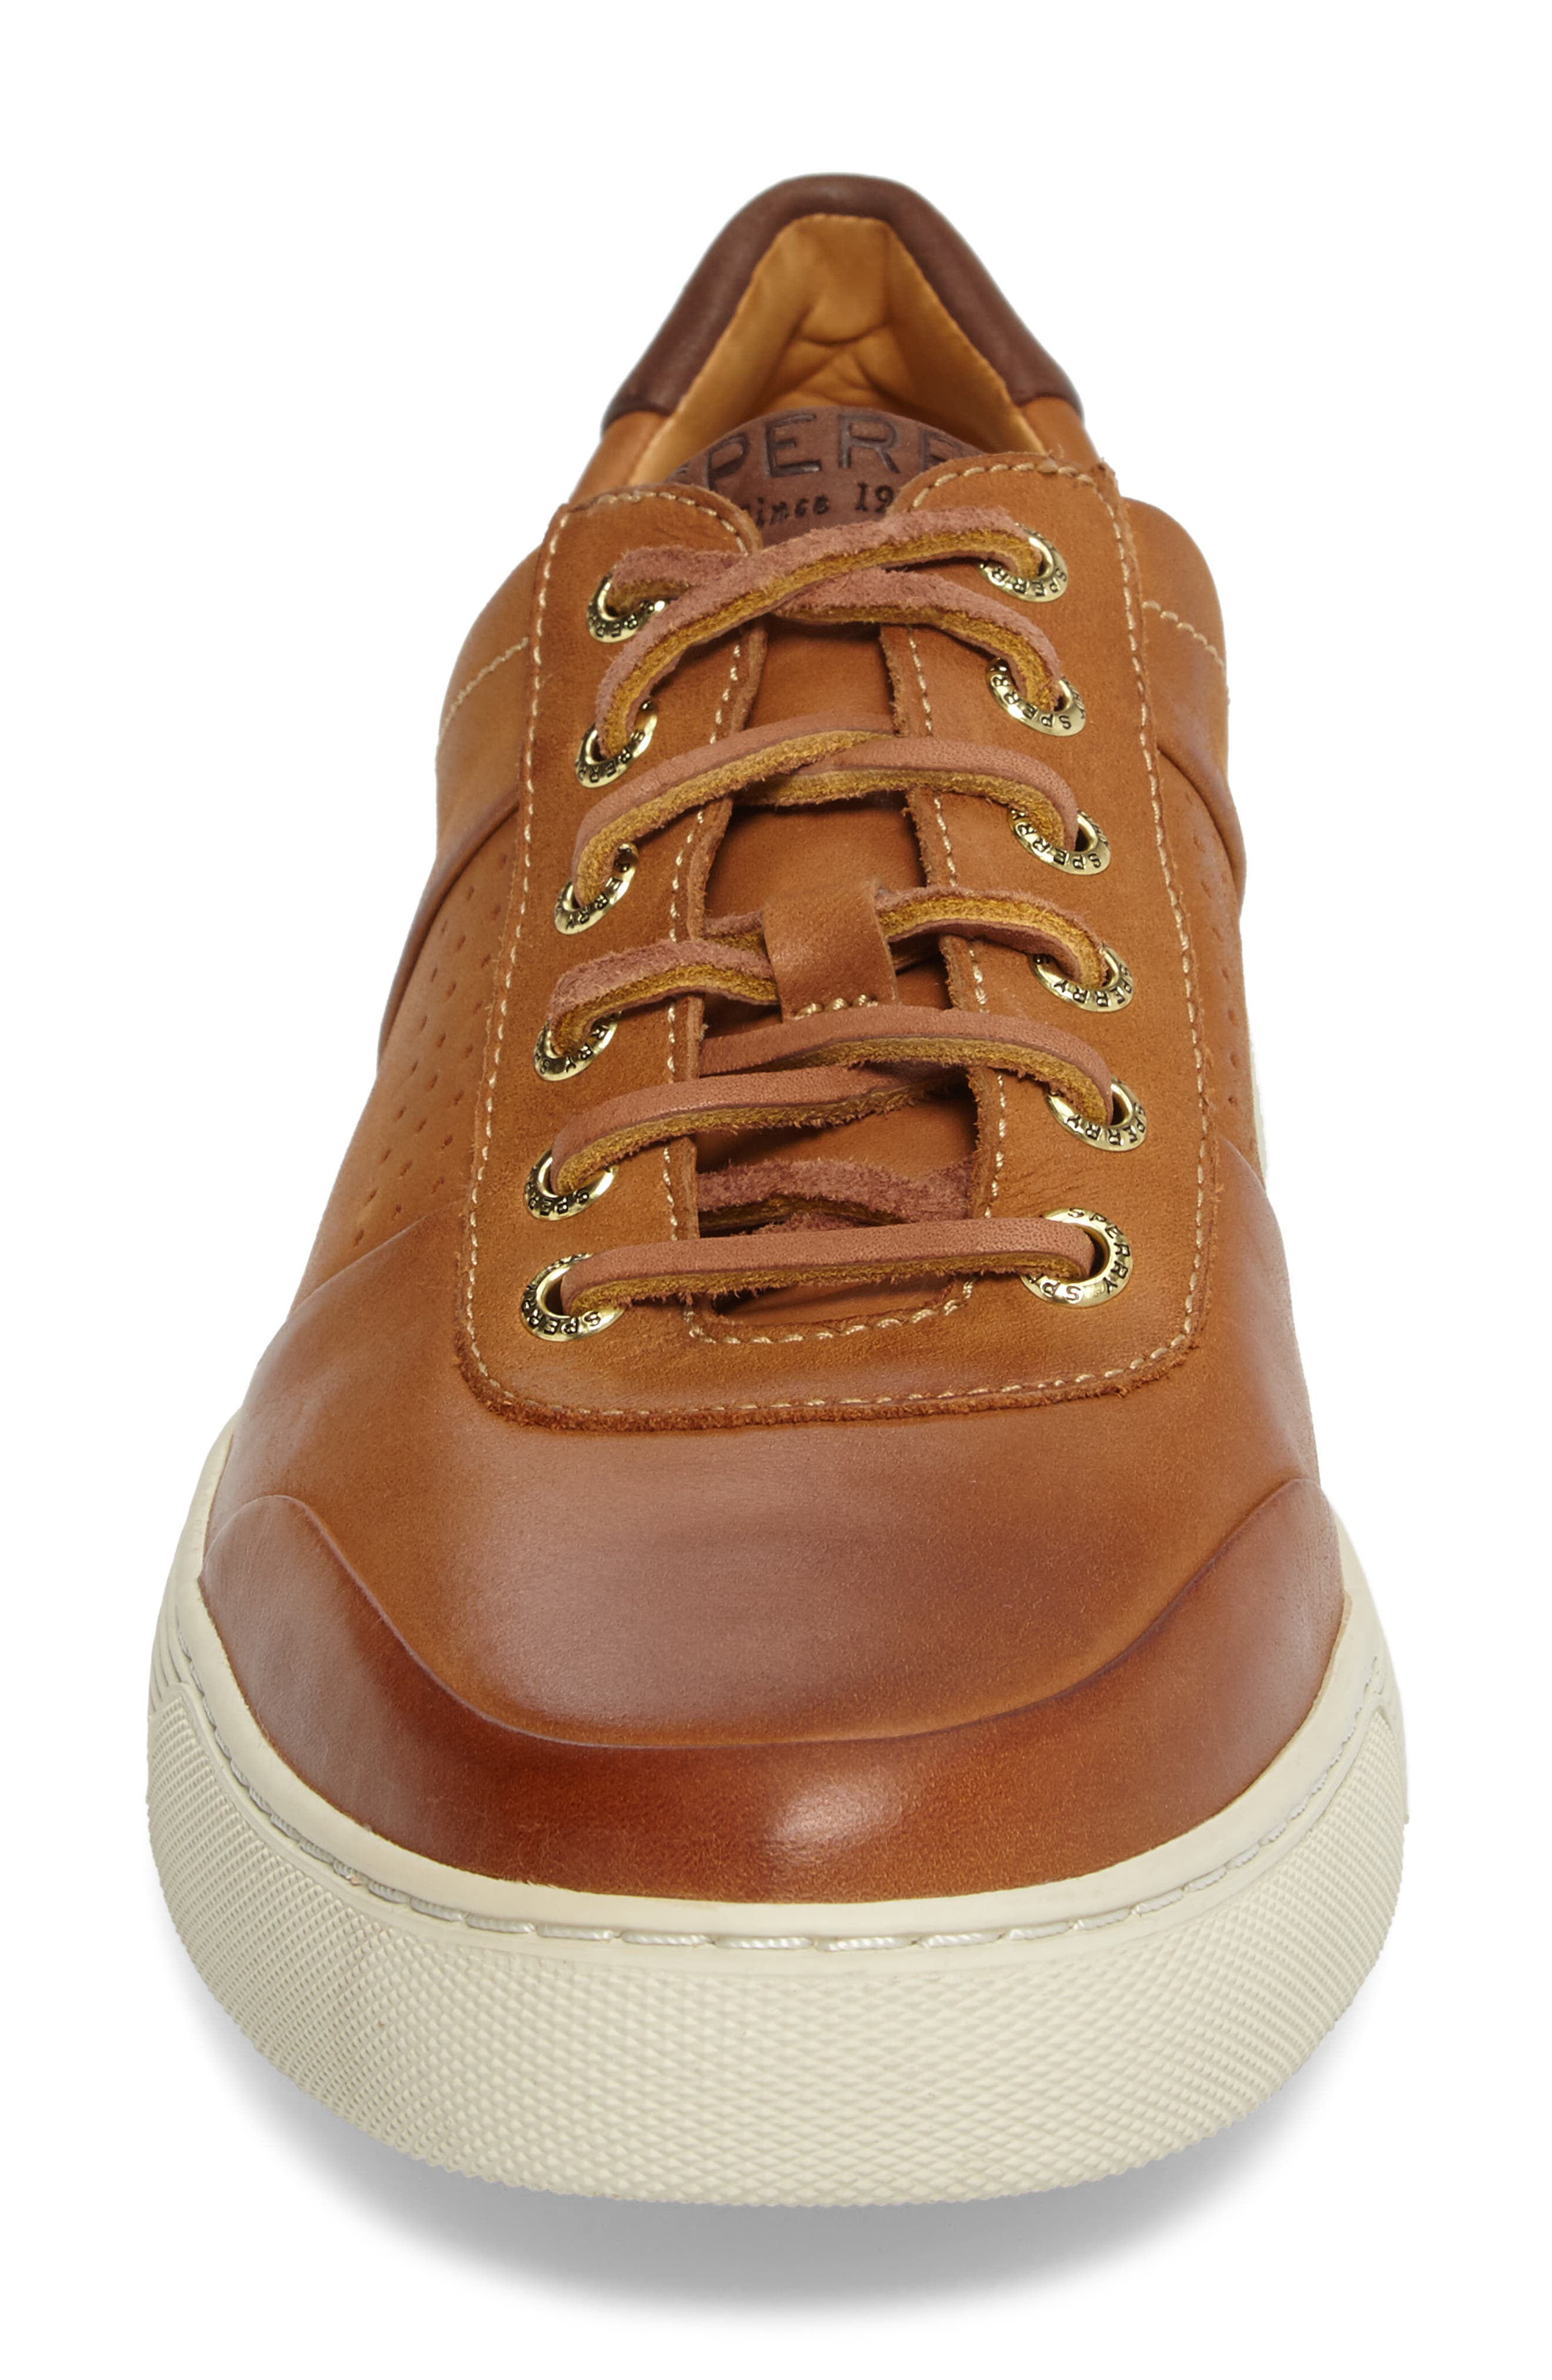 Gold Cup Sport Sneaker,                             Alternate thumbnail 8, color,